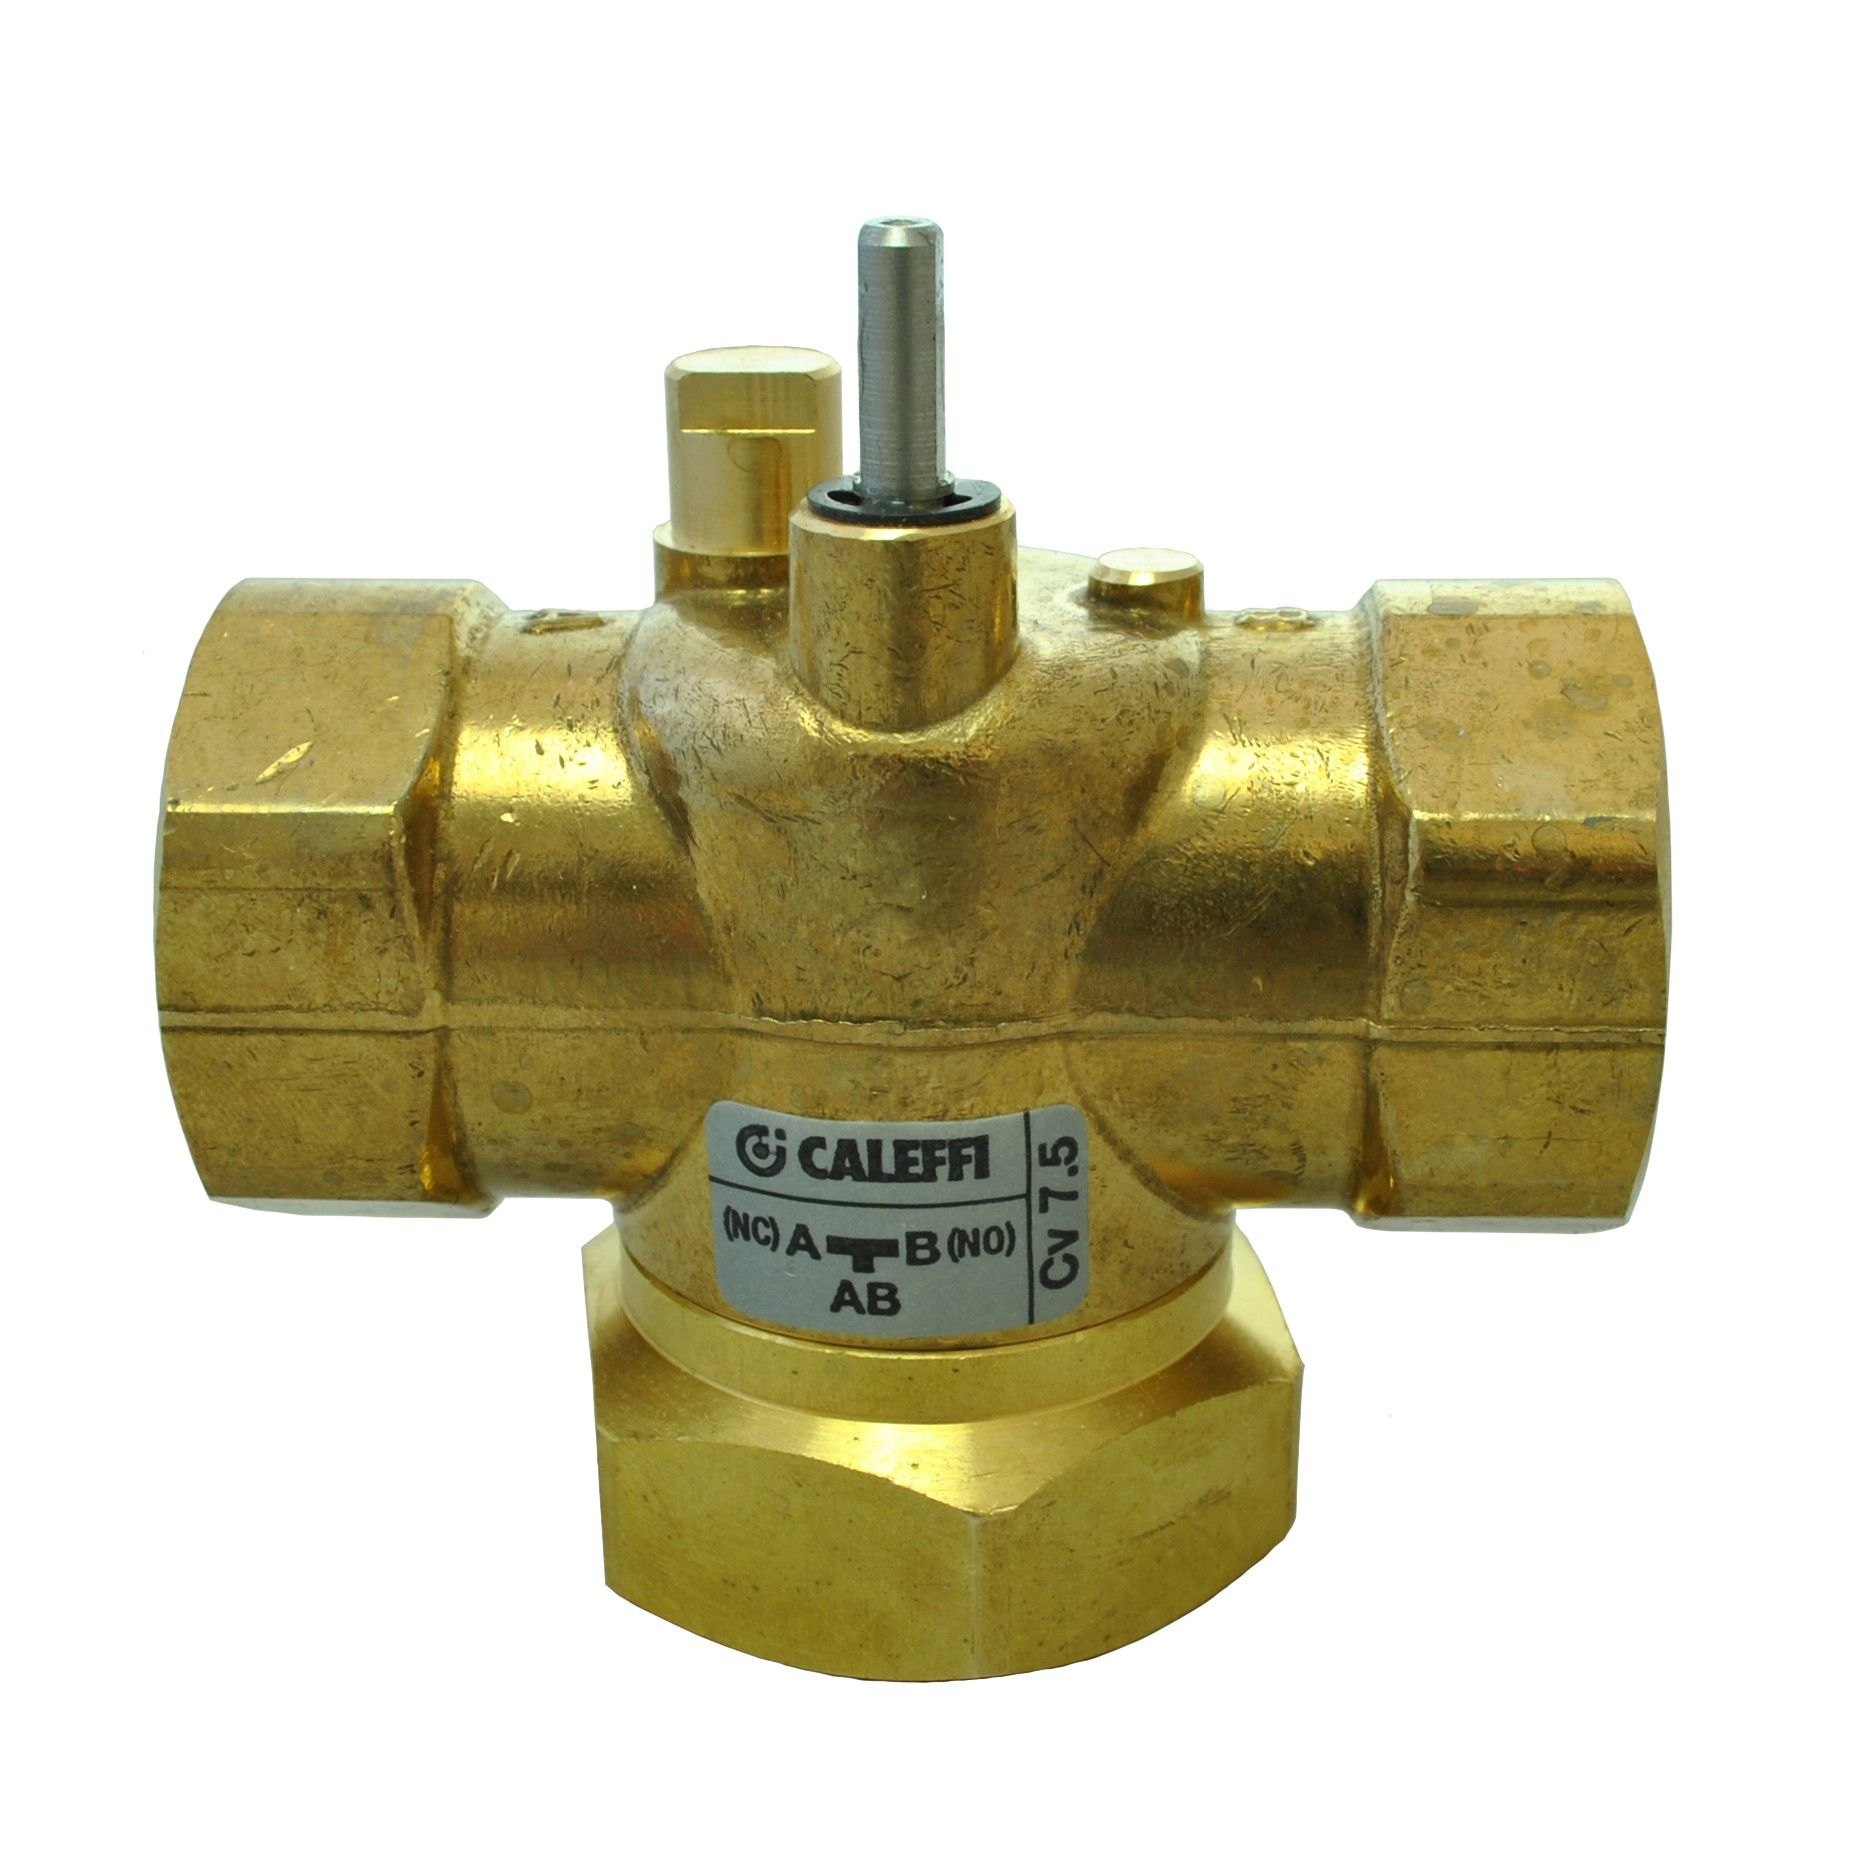 Caleffi Z-one - 1 NPT 3-way Straight Valve Body for Motorized Zone Valves